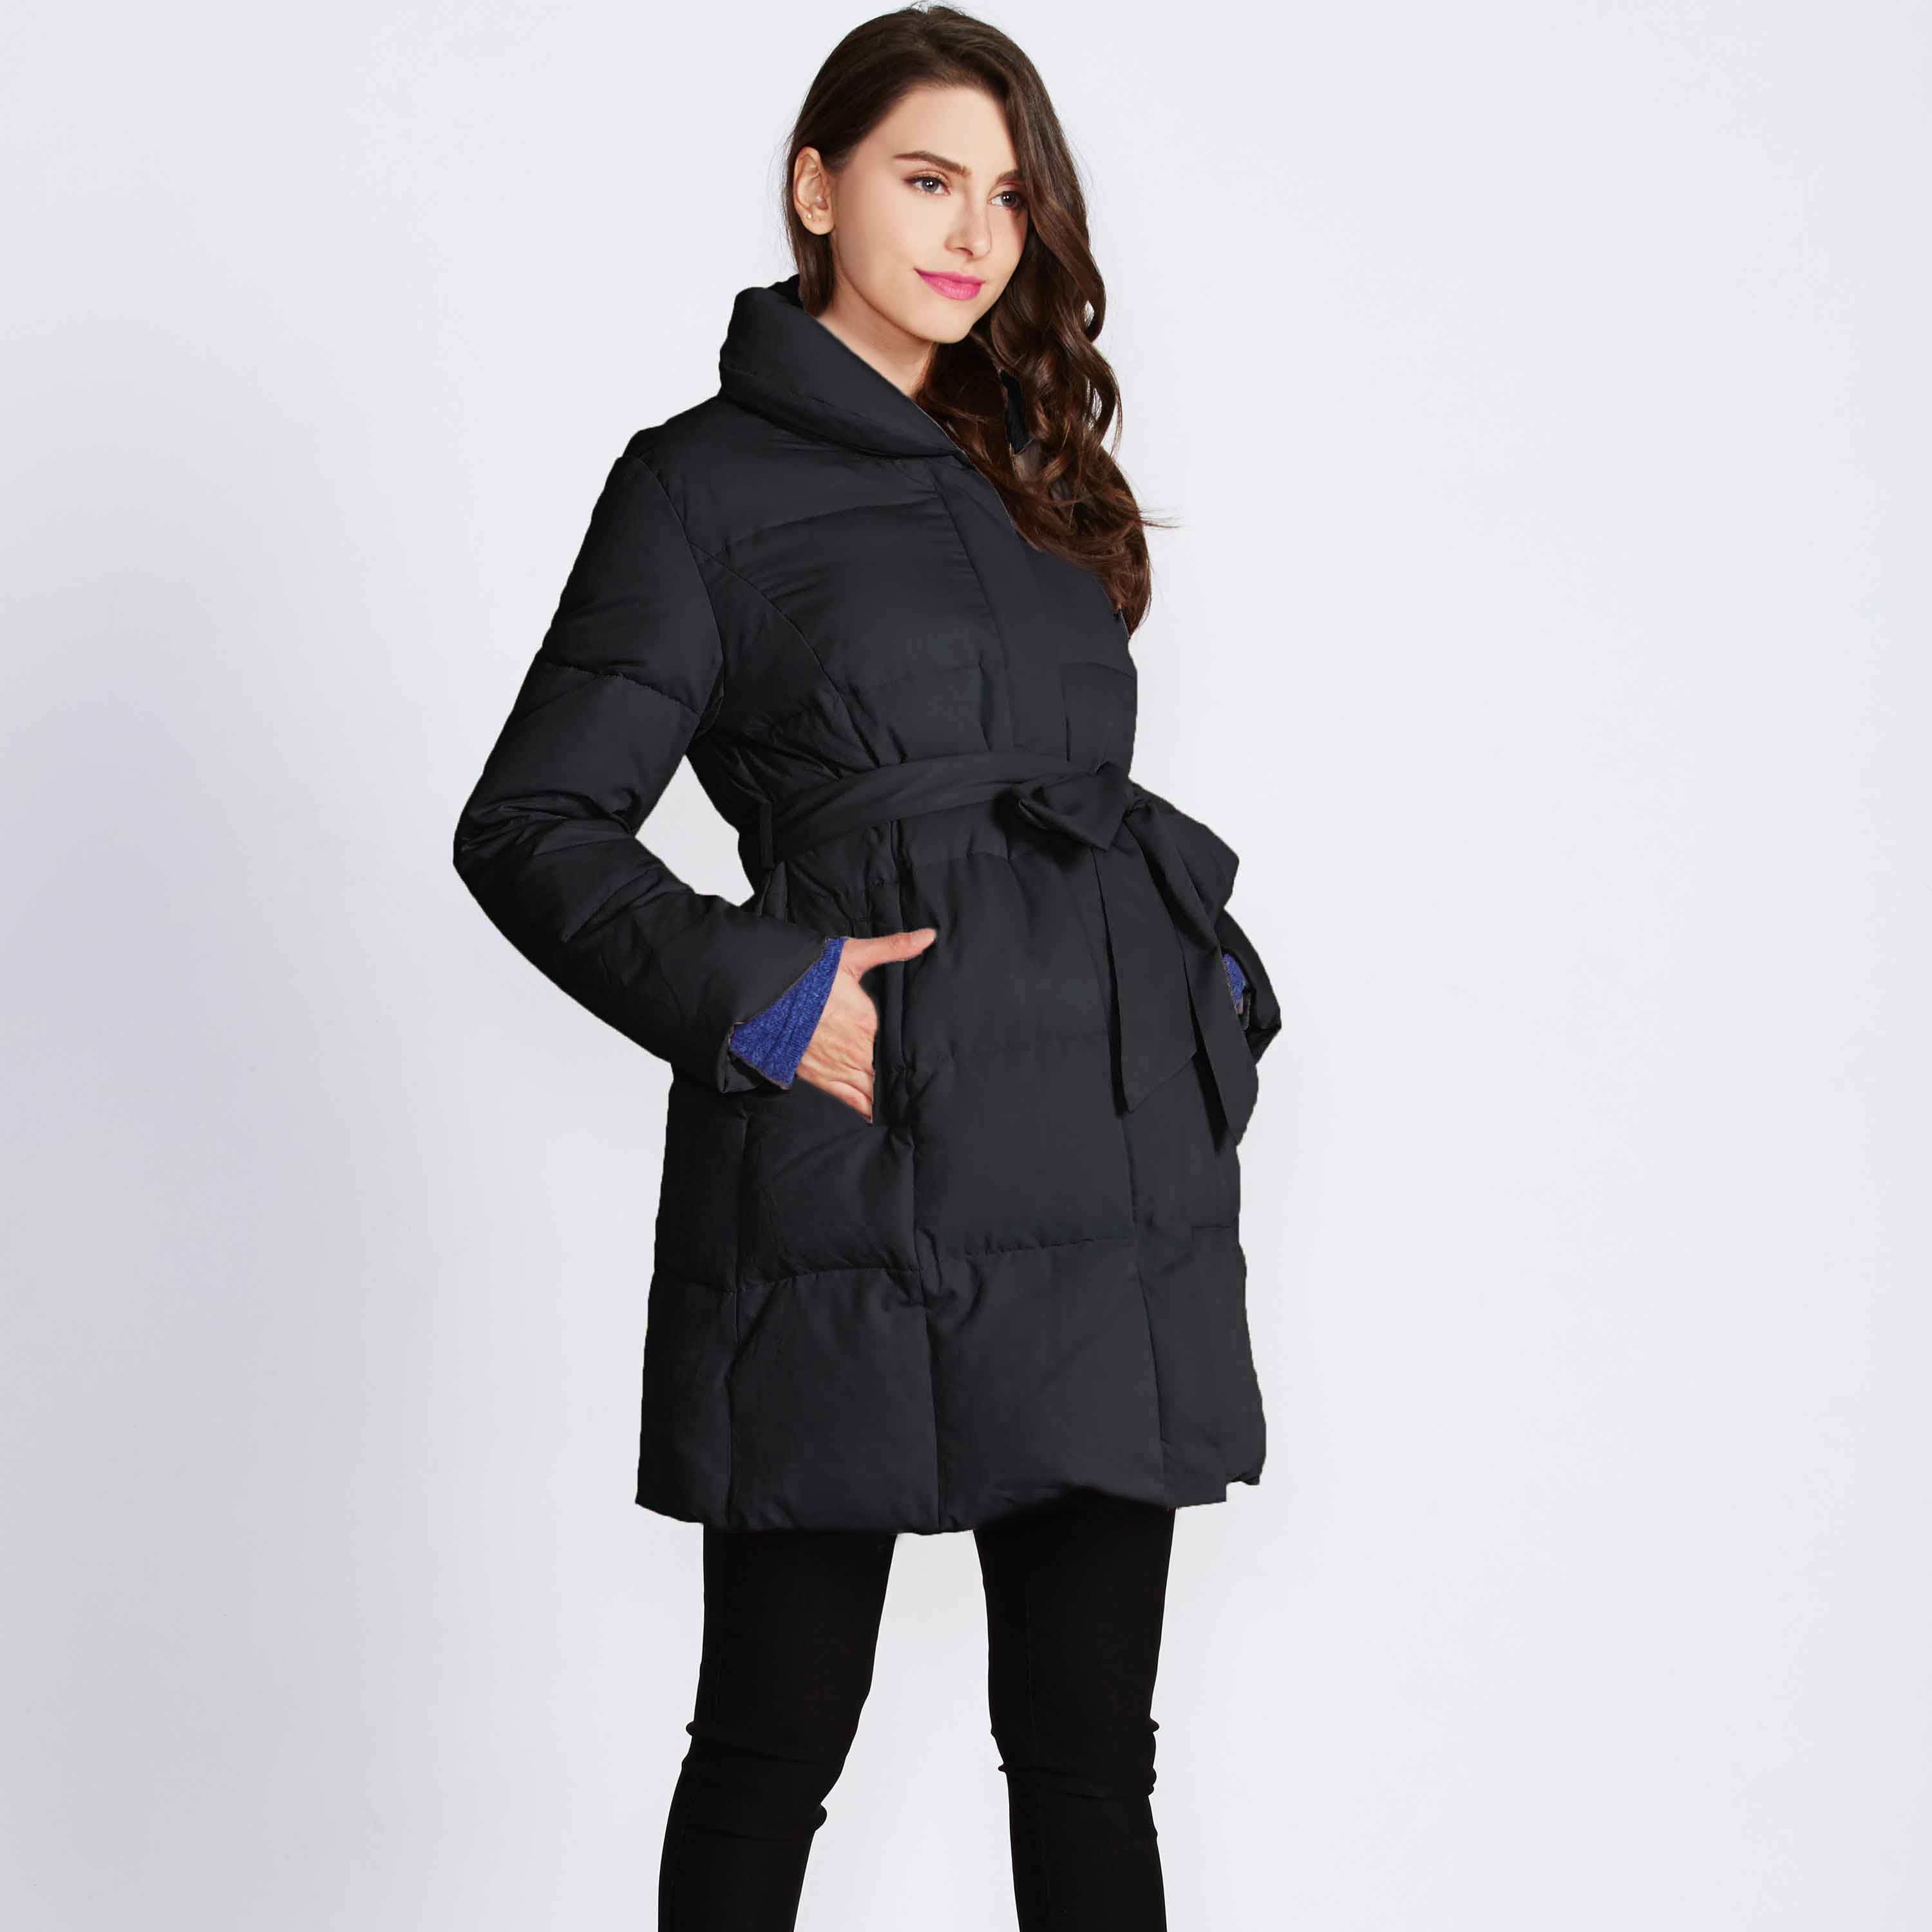 LUXE Maternity and Post-Partum Baby Covering Down Winter Coat